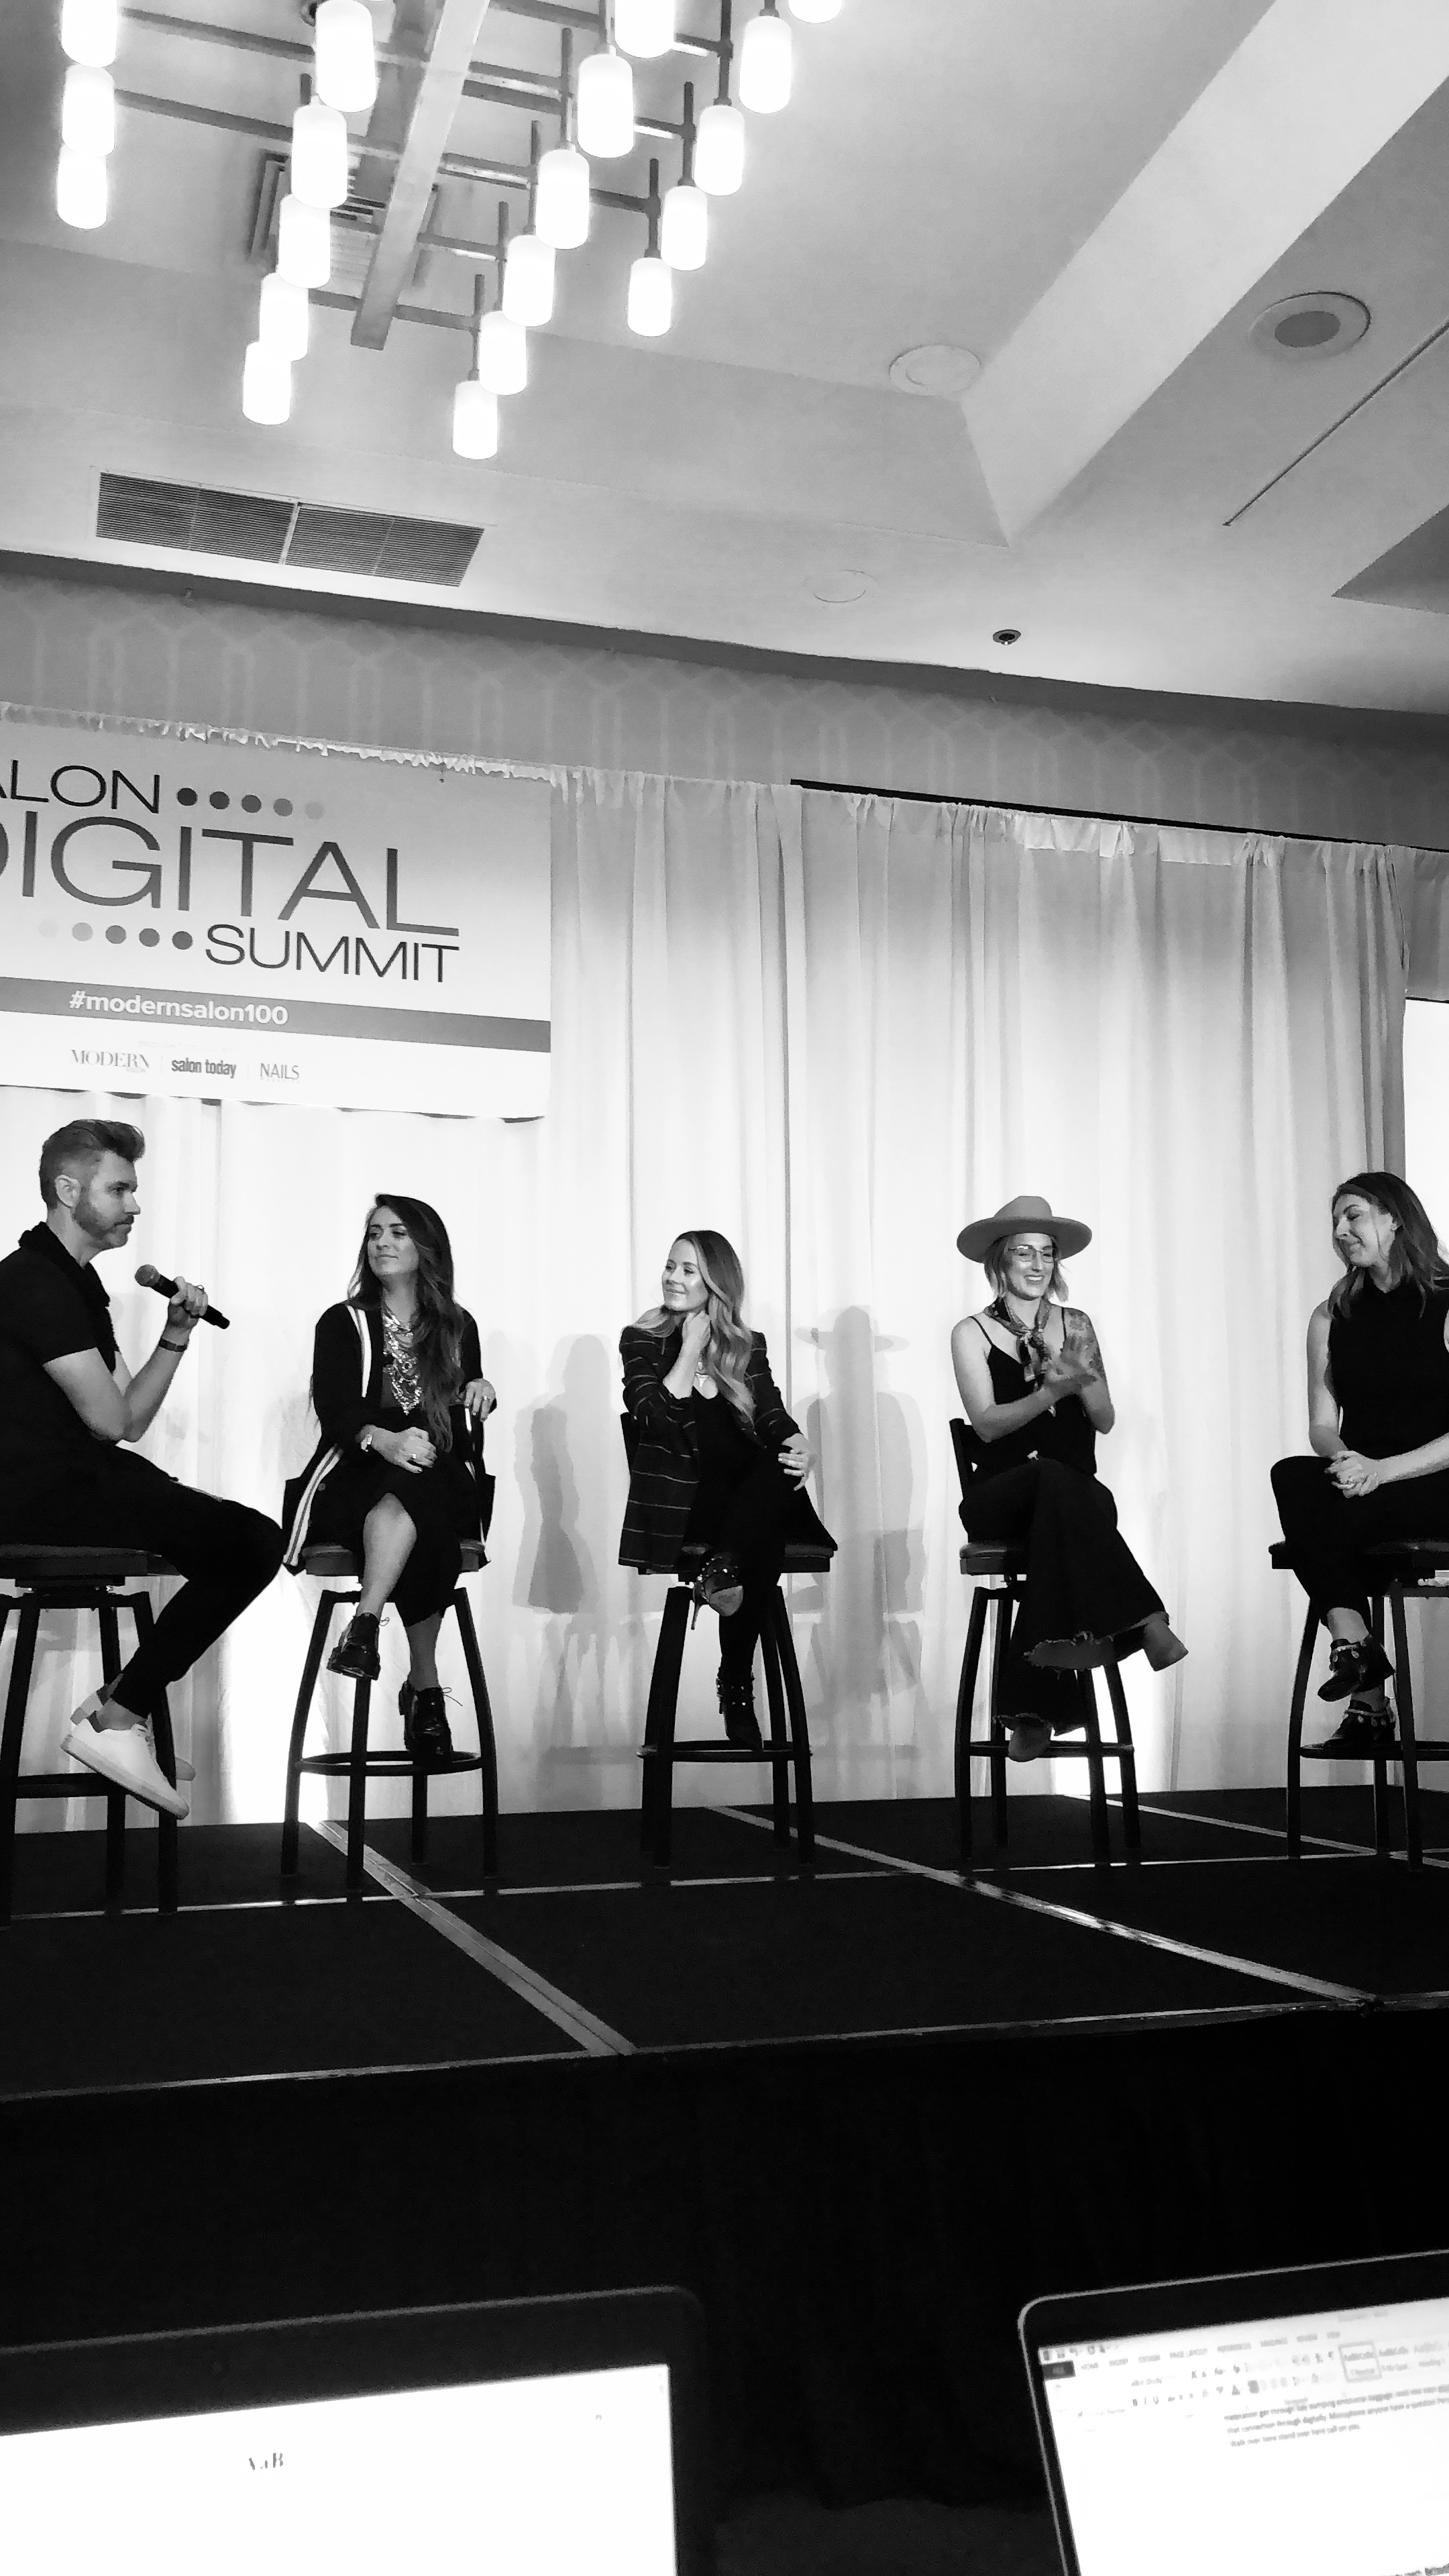 Salon Digital Summit: Personal Branding for Salons and Stylists: Defining Your Voice, Your Reach, Your Passion